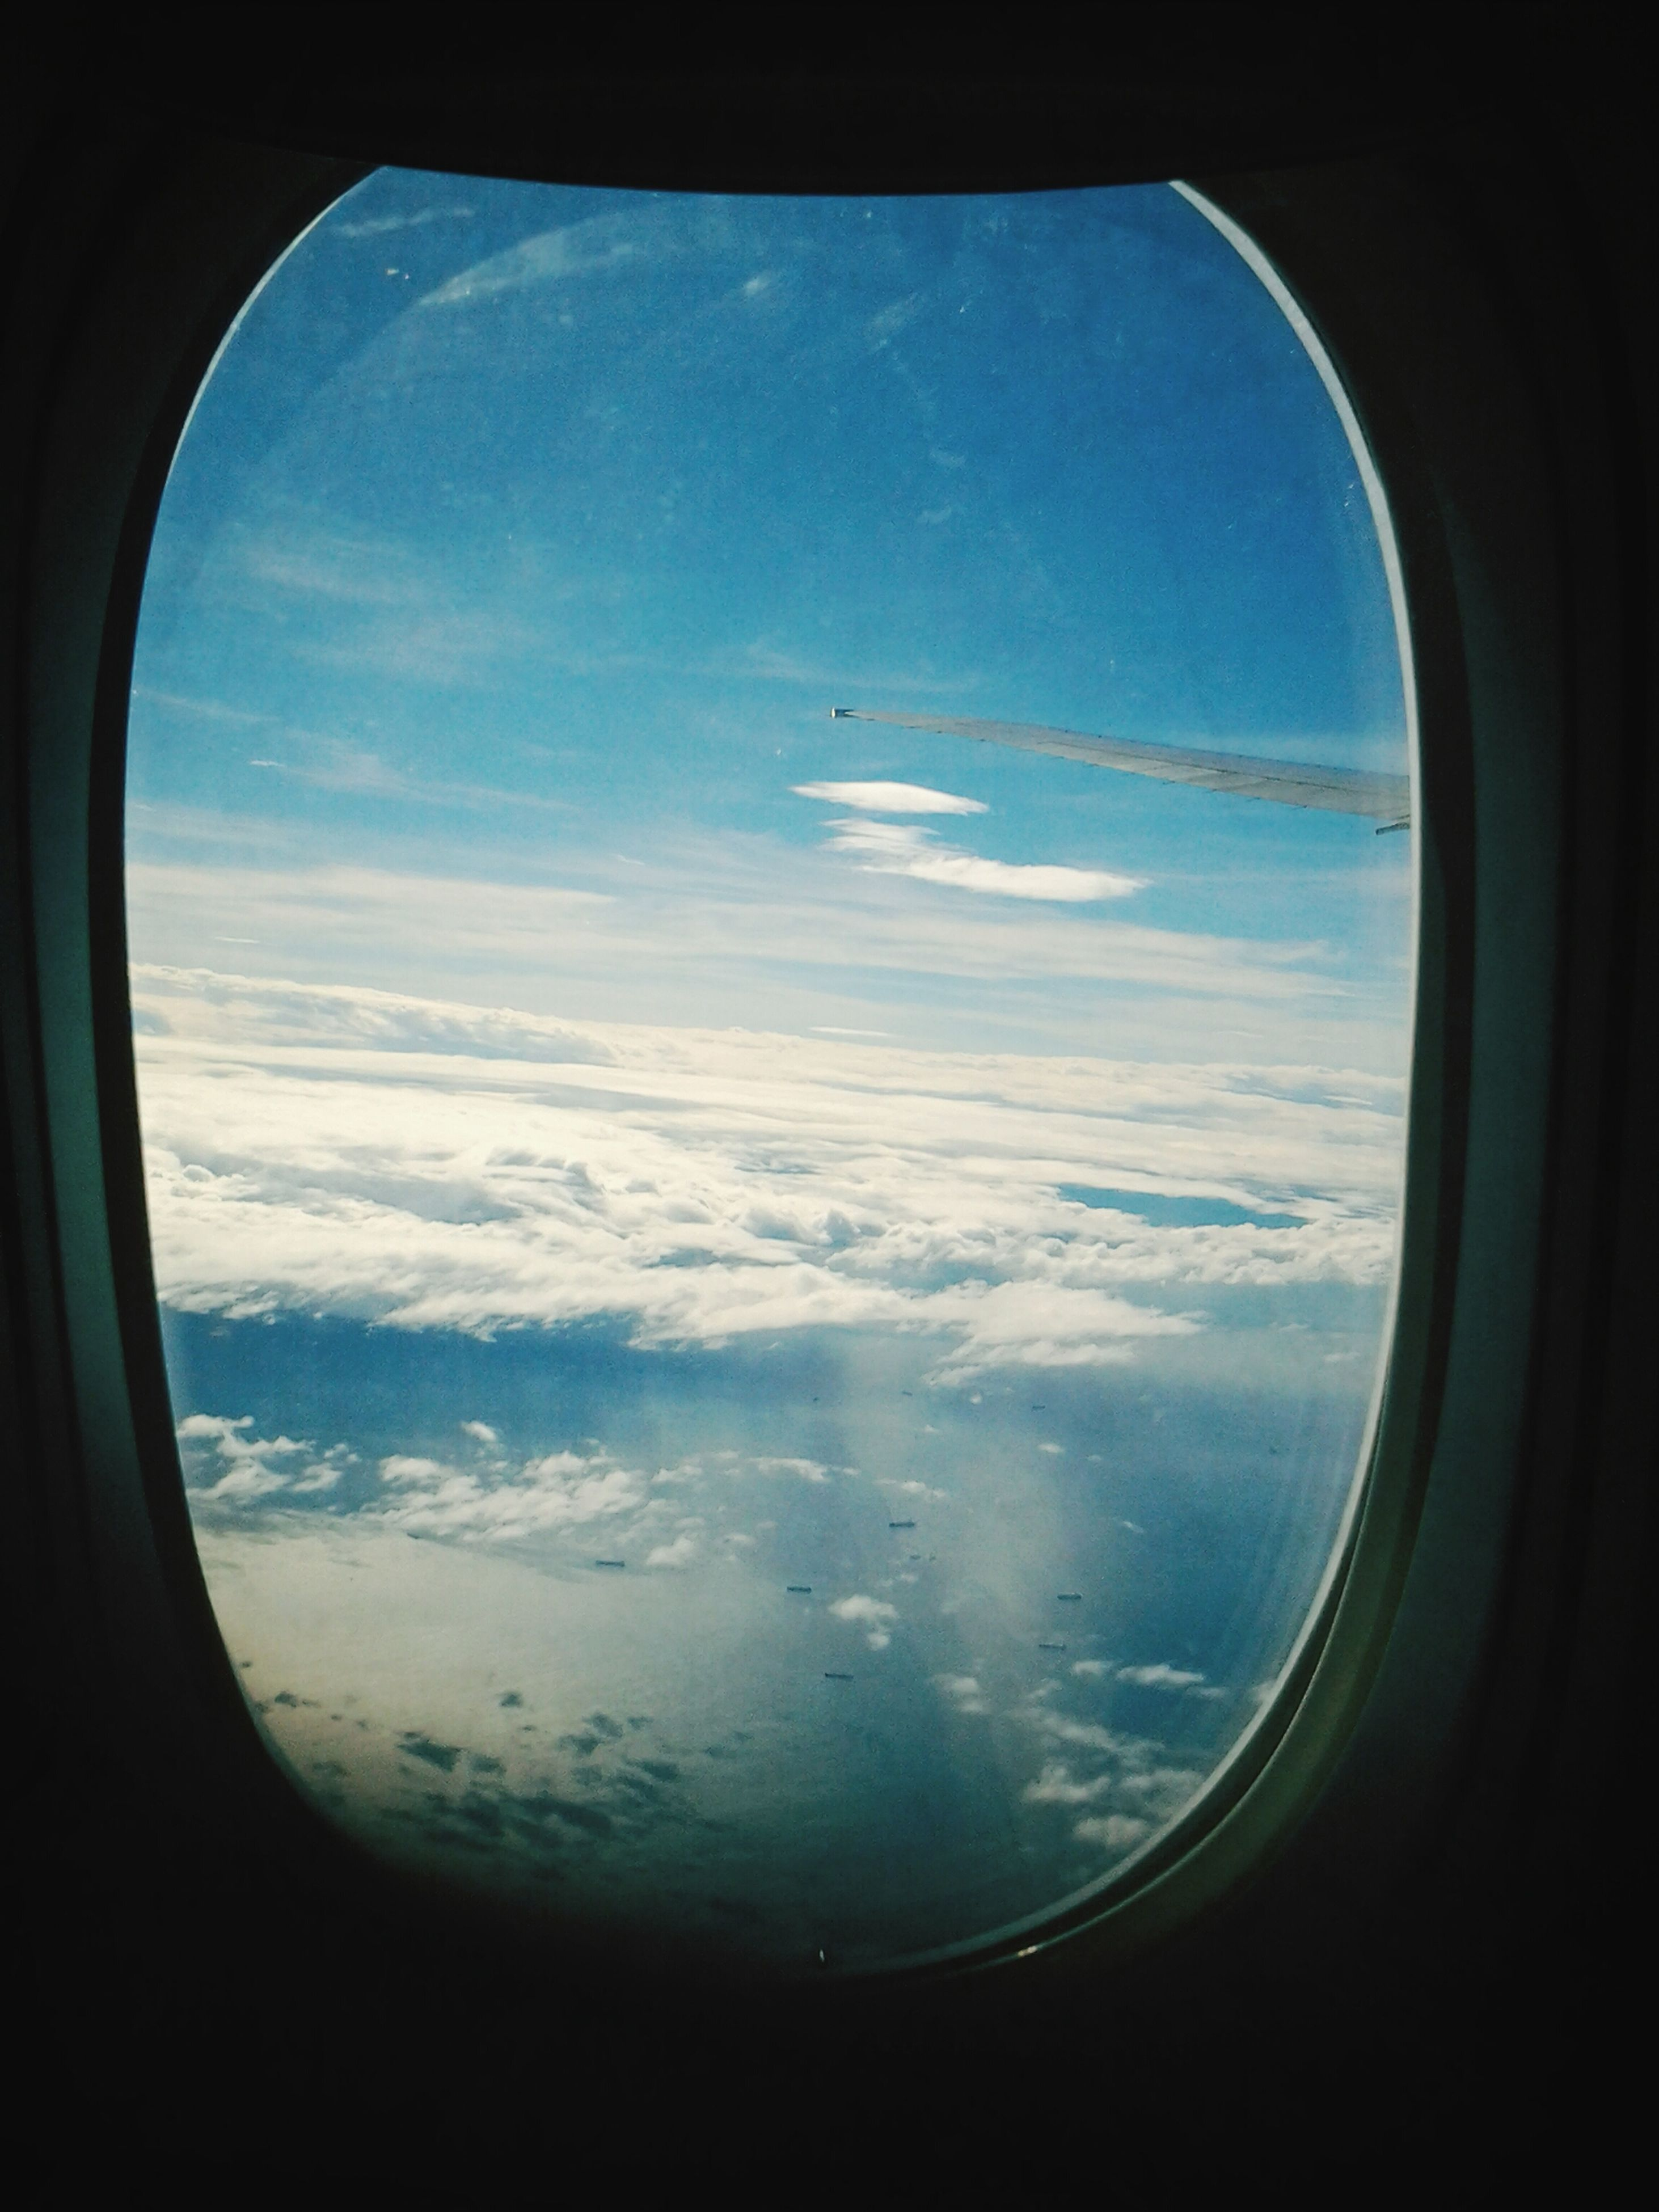 airplane, air vehicle, transportation, flying, mode of transport, window, vehicle interior, aircraft wing, aerial view, transparent, mid-air, sky, glass - material, travel, part of, blue, journey, scenics, beauty in nature, cropped